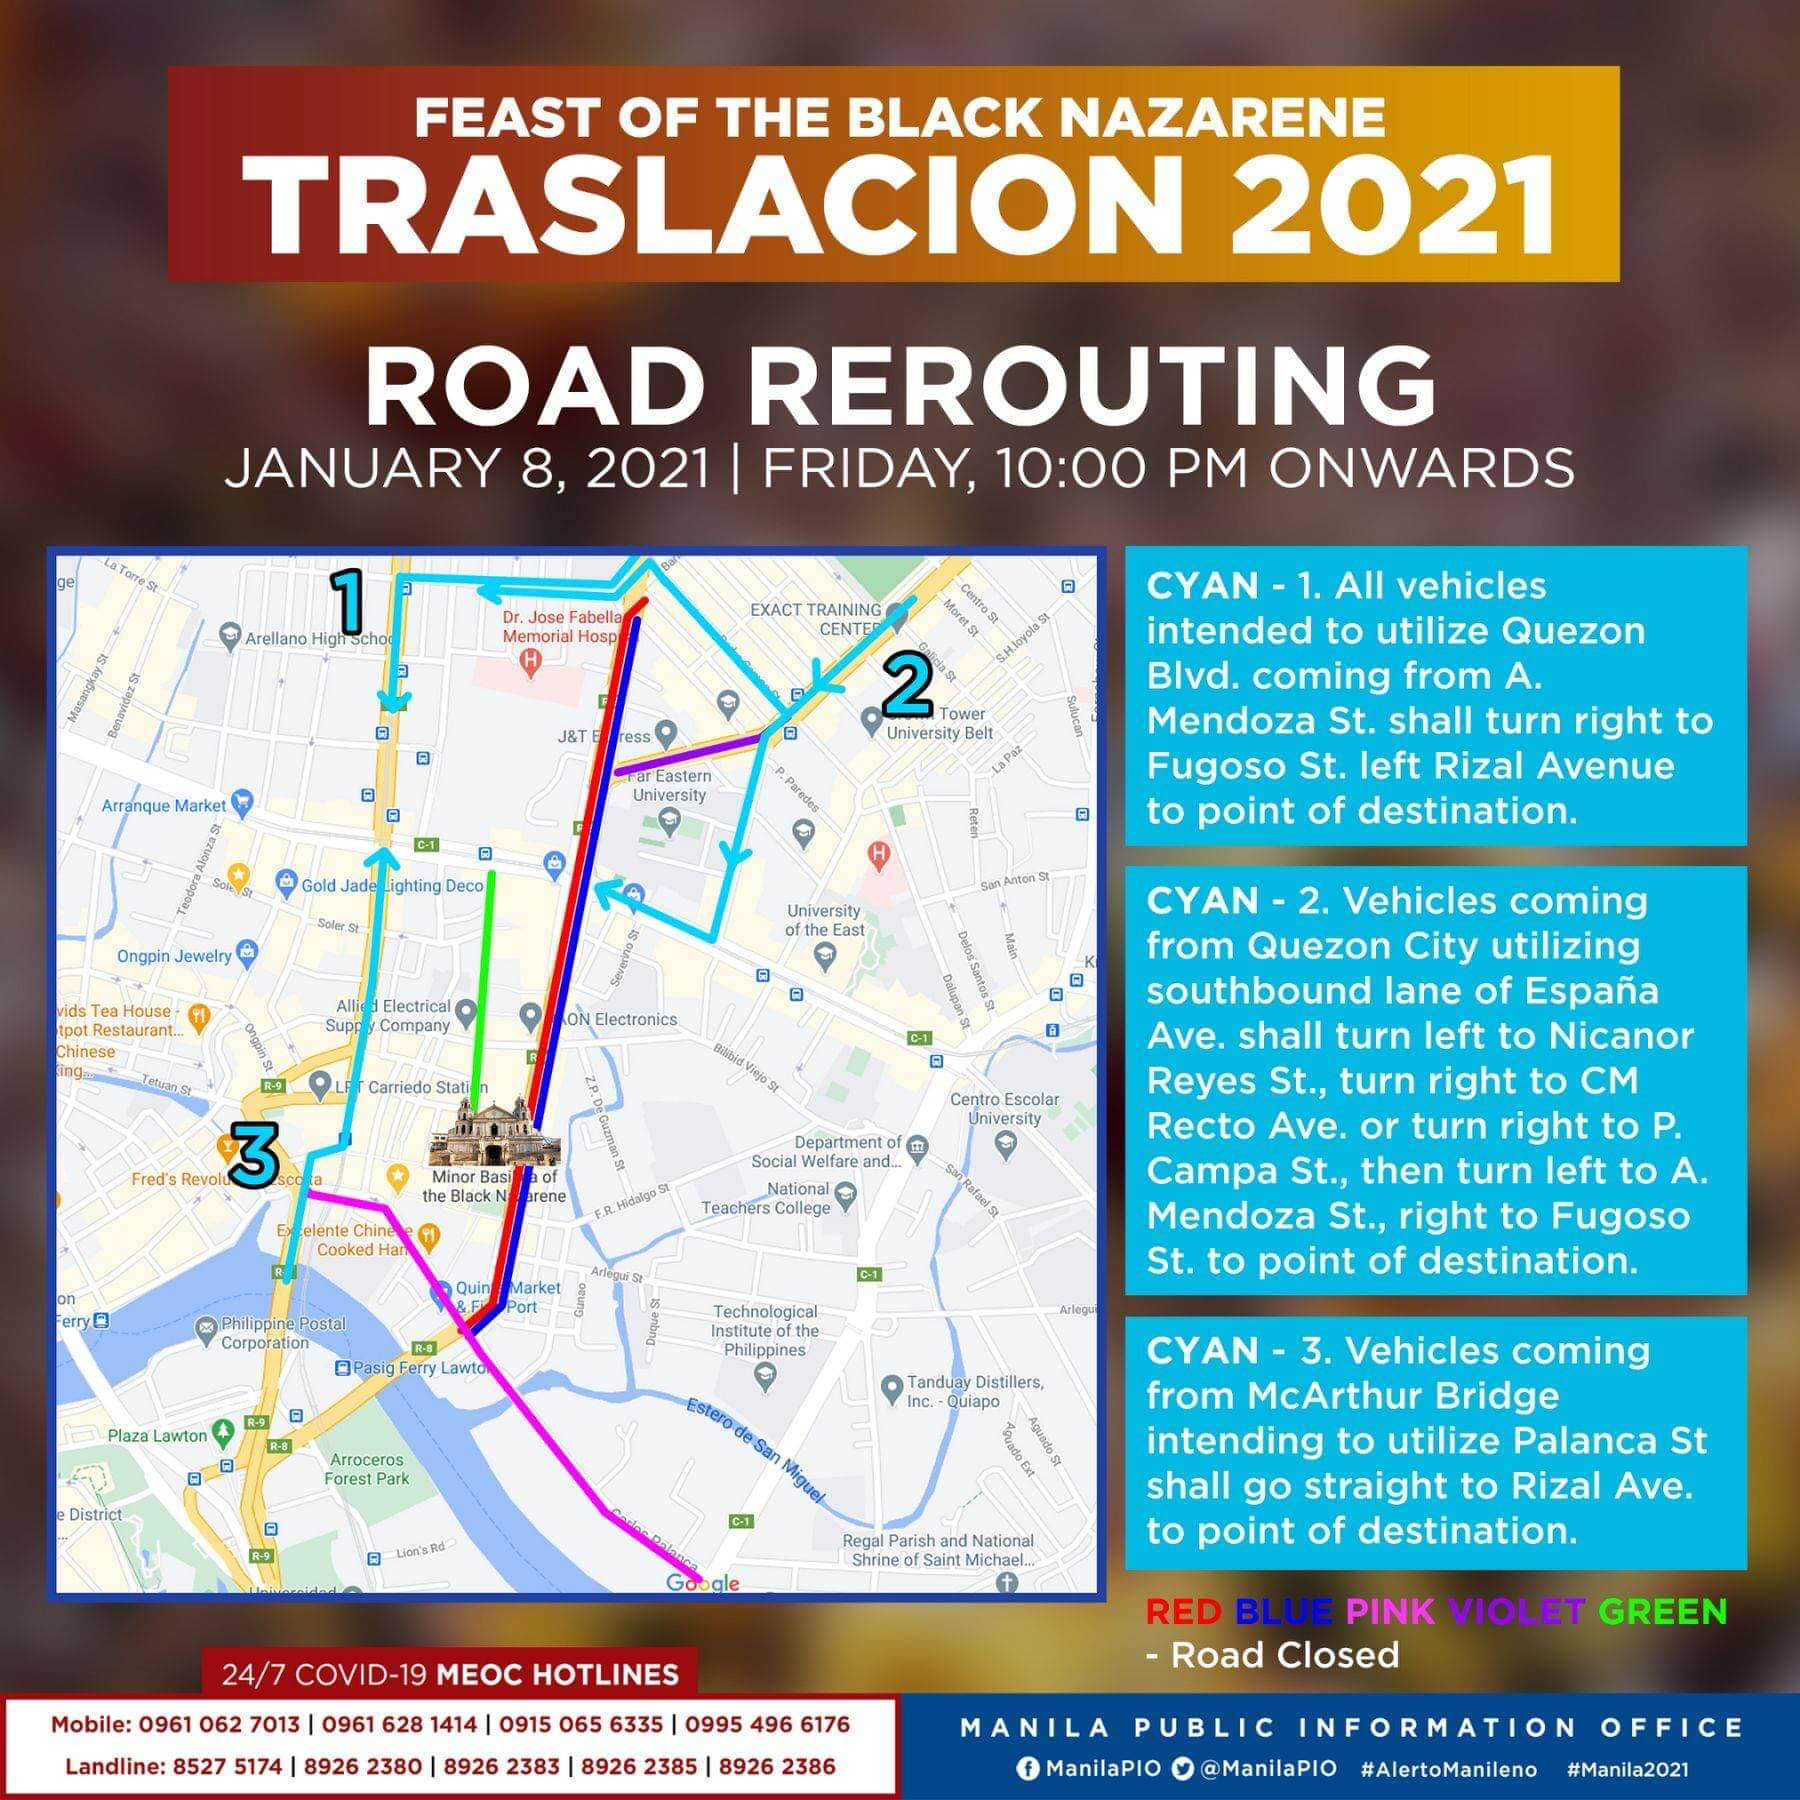 Traslacion Road rerouting on January 8, 2021 (10 pm onwards)